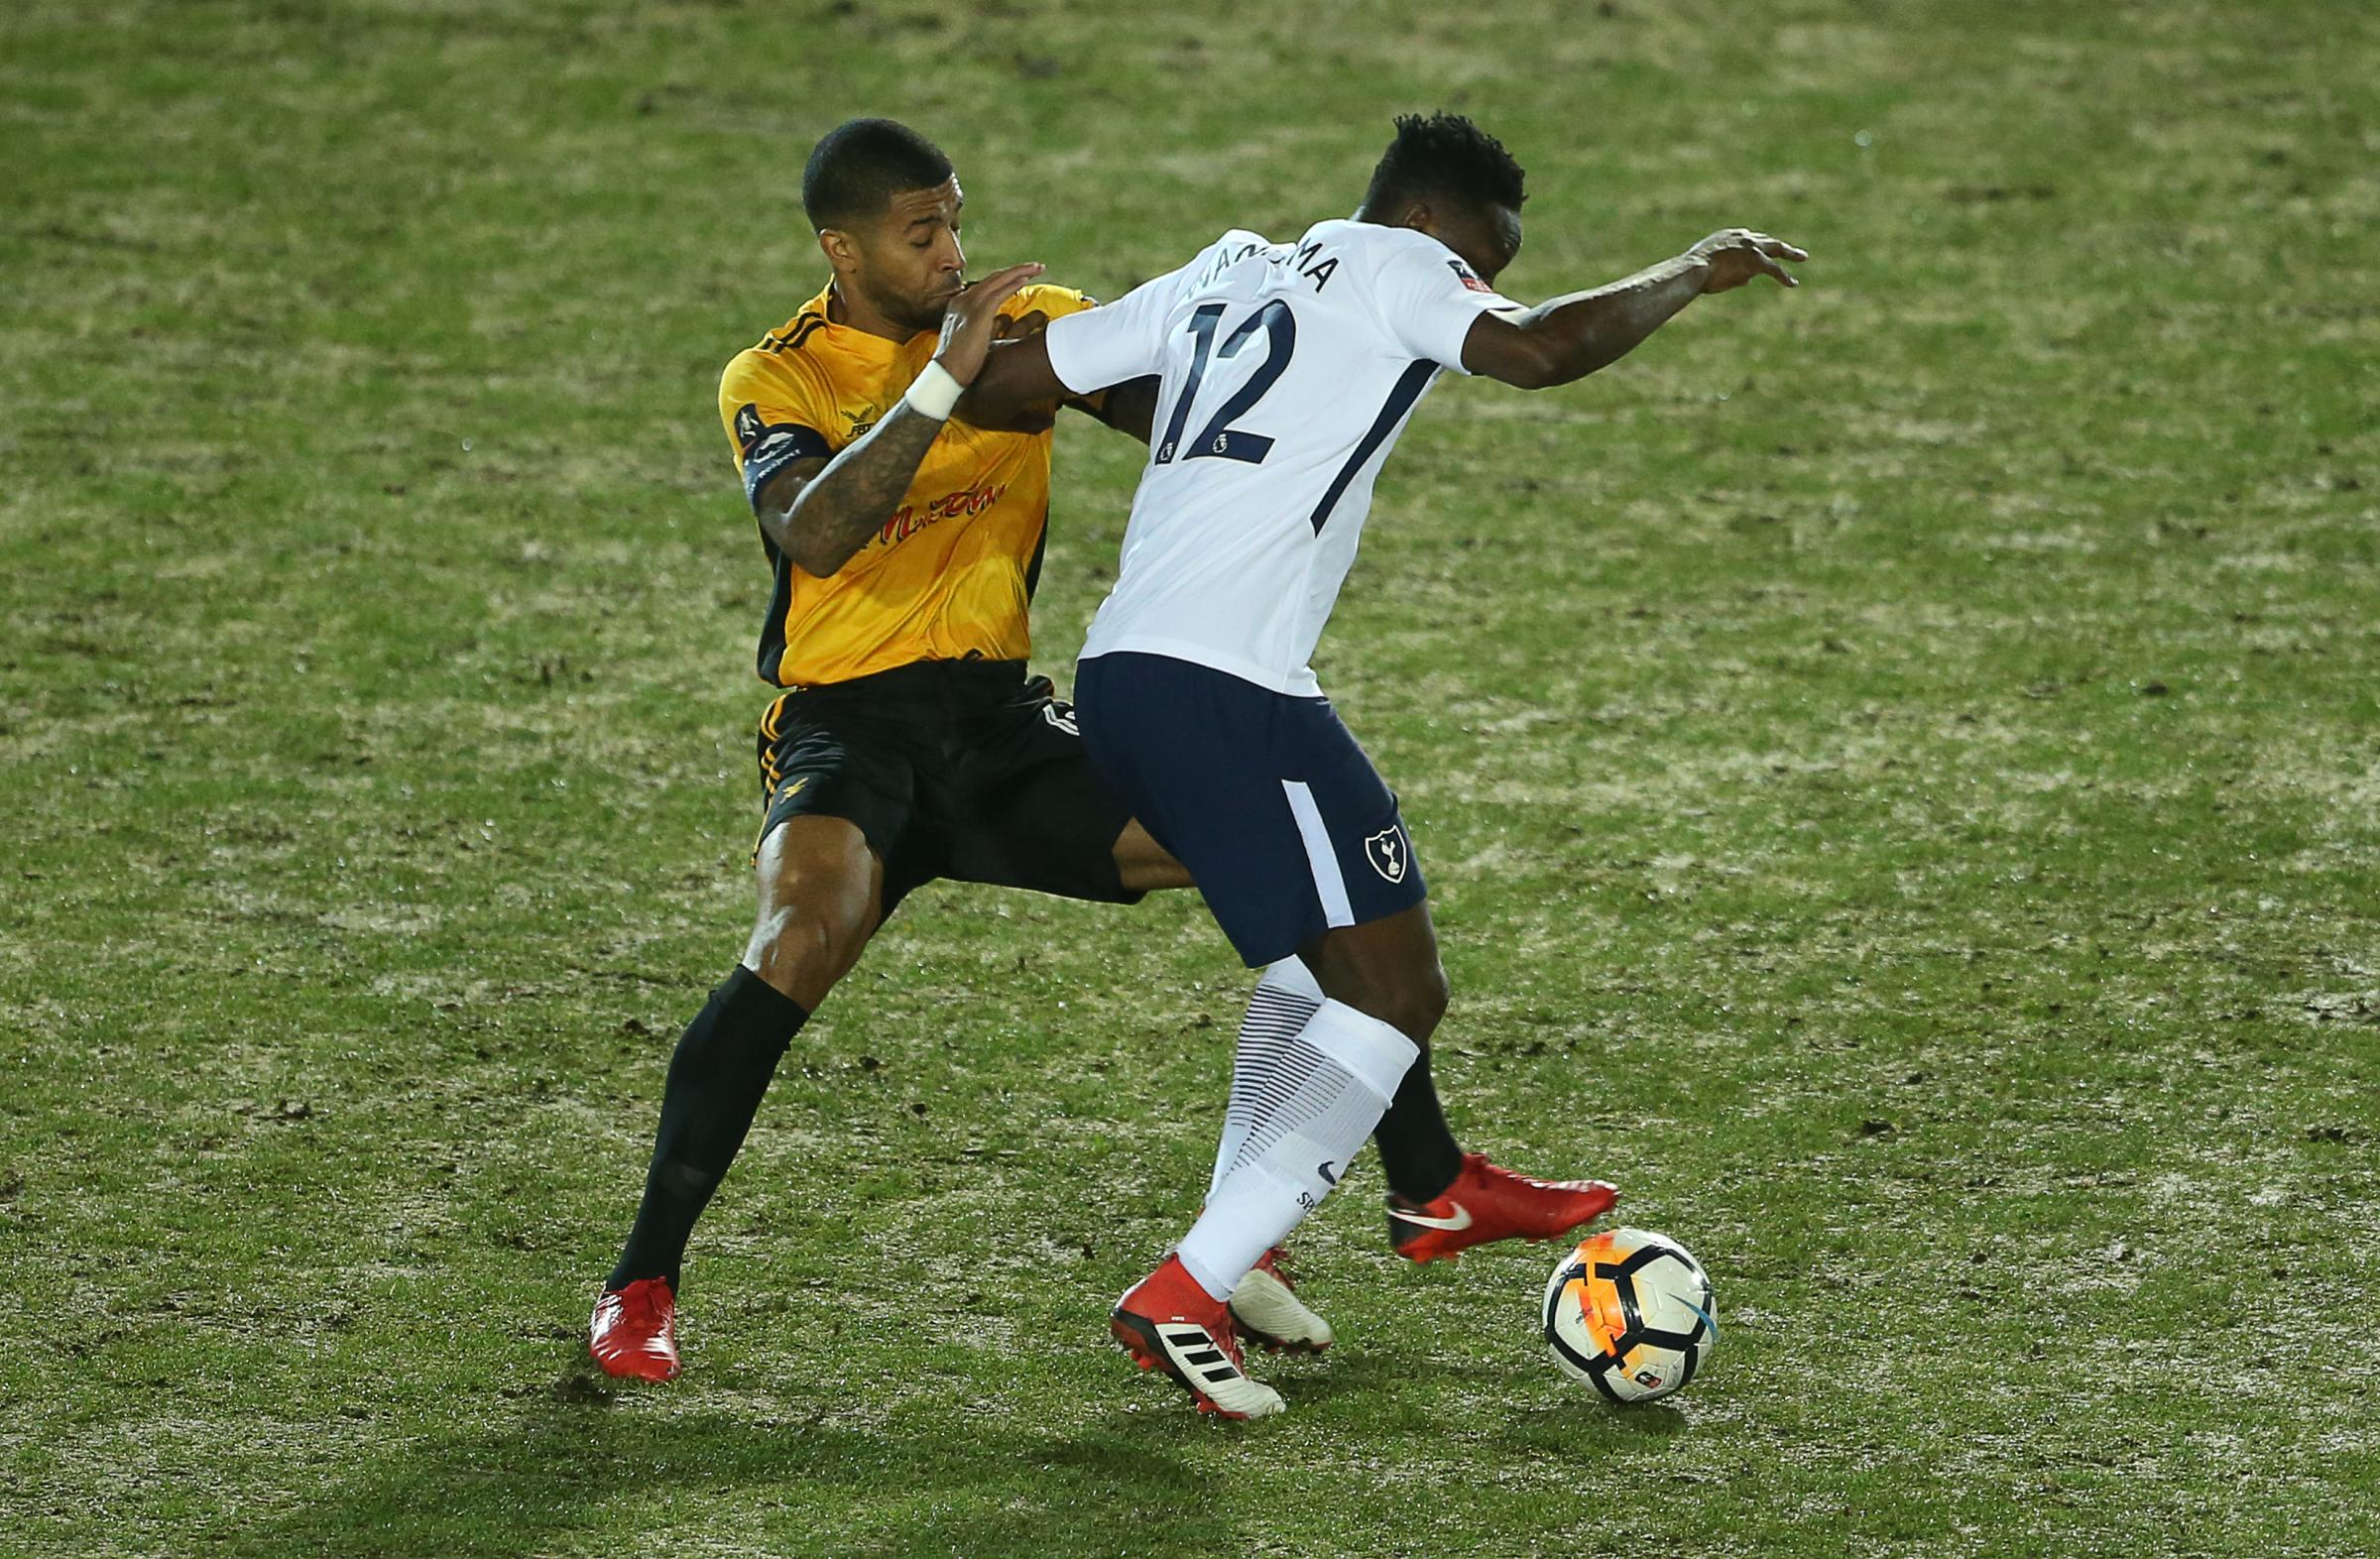 SKIPPER: Newport County captain Joss Labaide in action against Tottenham Hotspur's Victor Wanyama in January